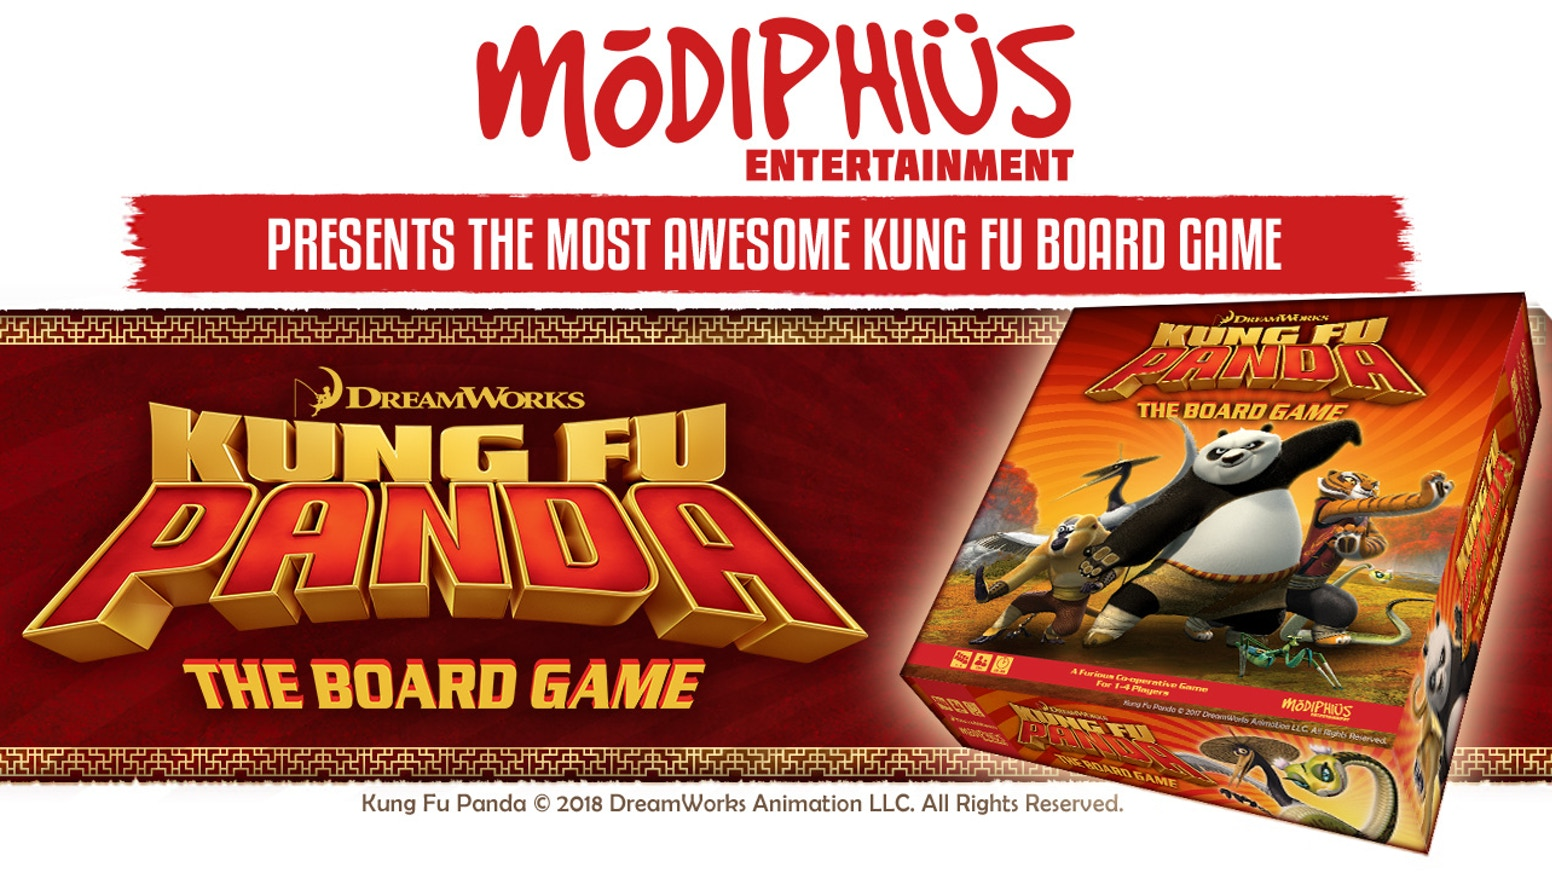 A game of furious action where players co-operate under a time limit to defeat Tai Lung & other villains from the Kung Fu Panda movies